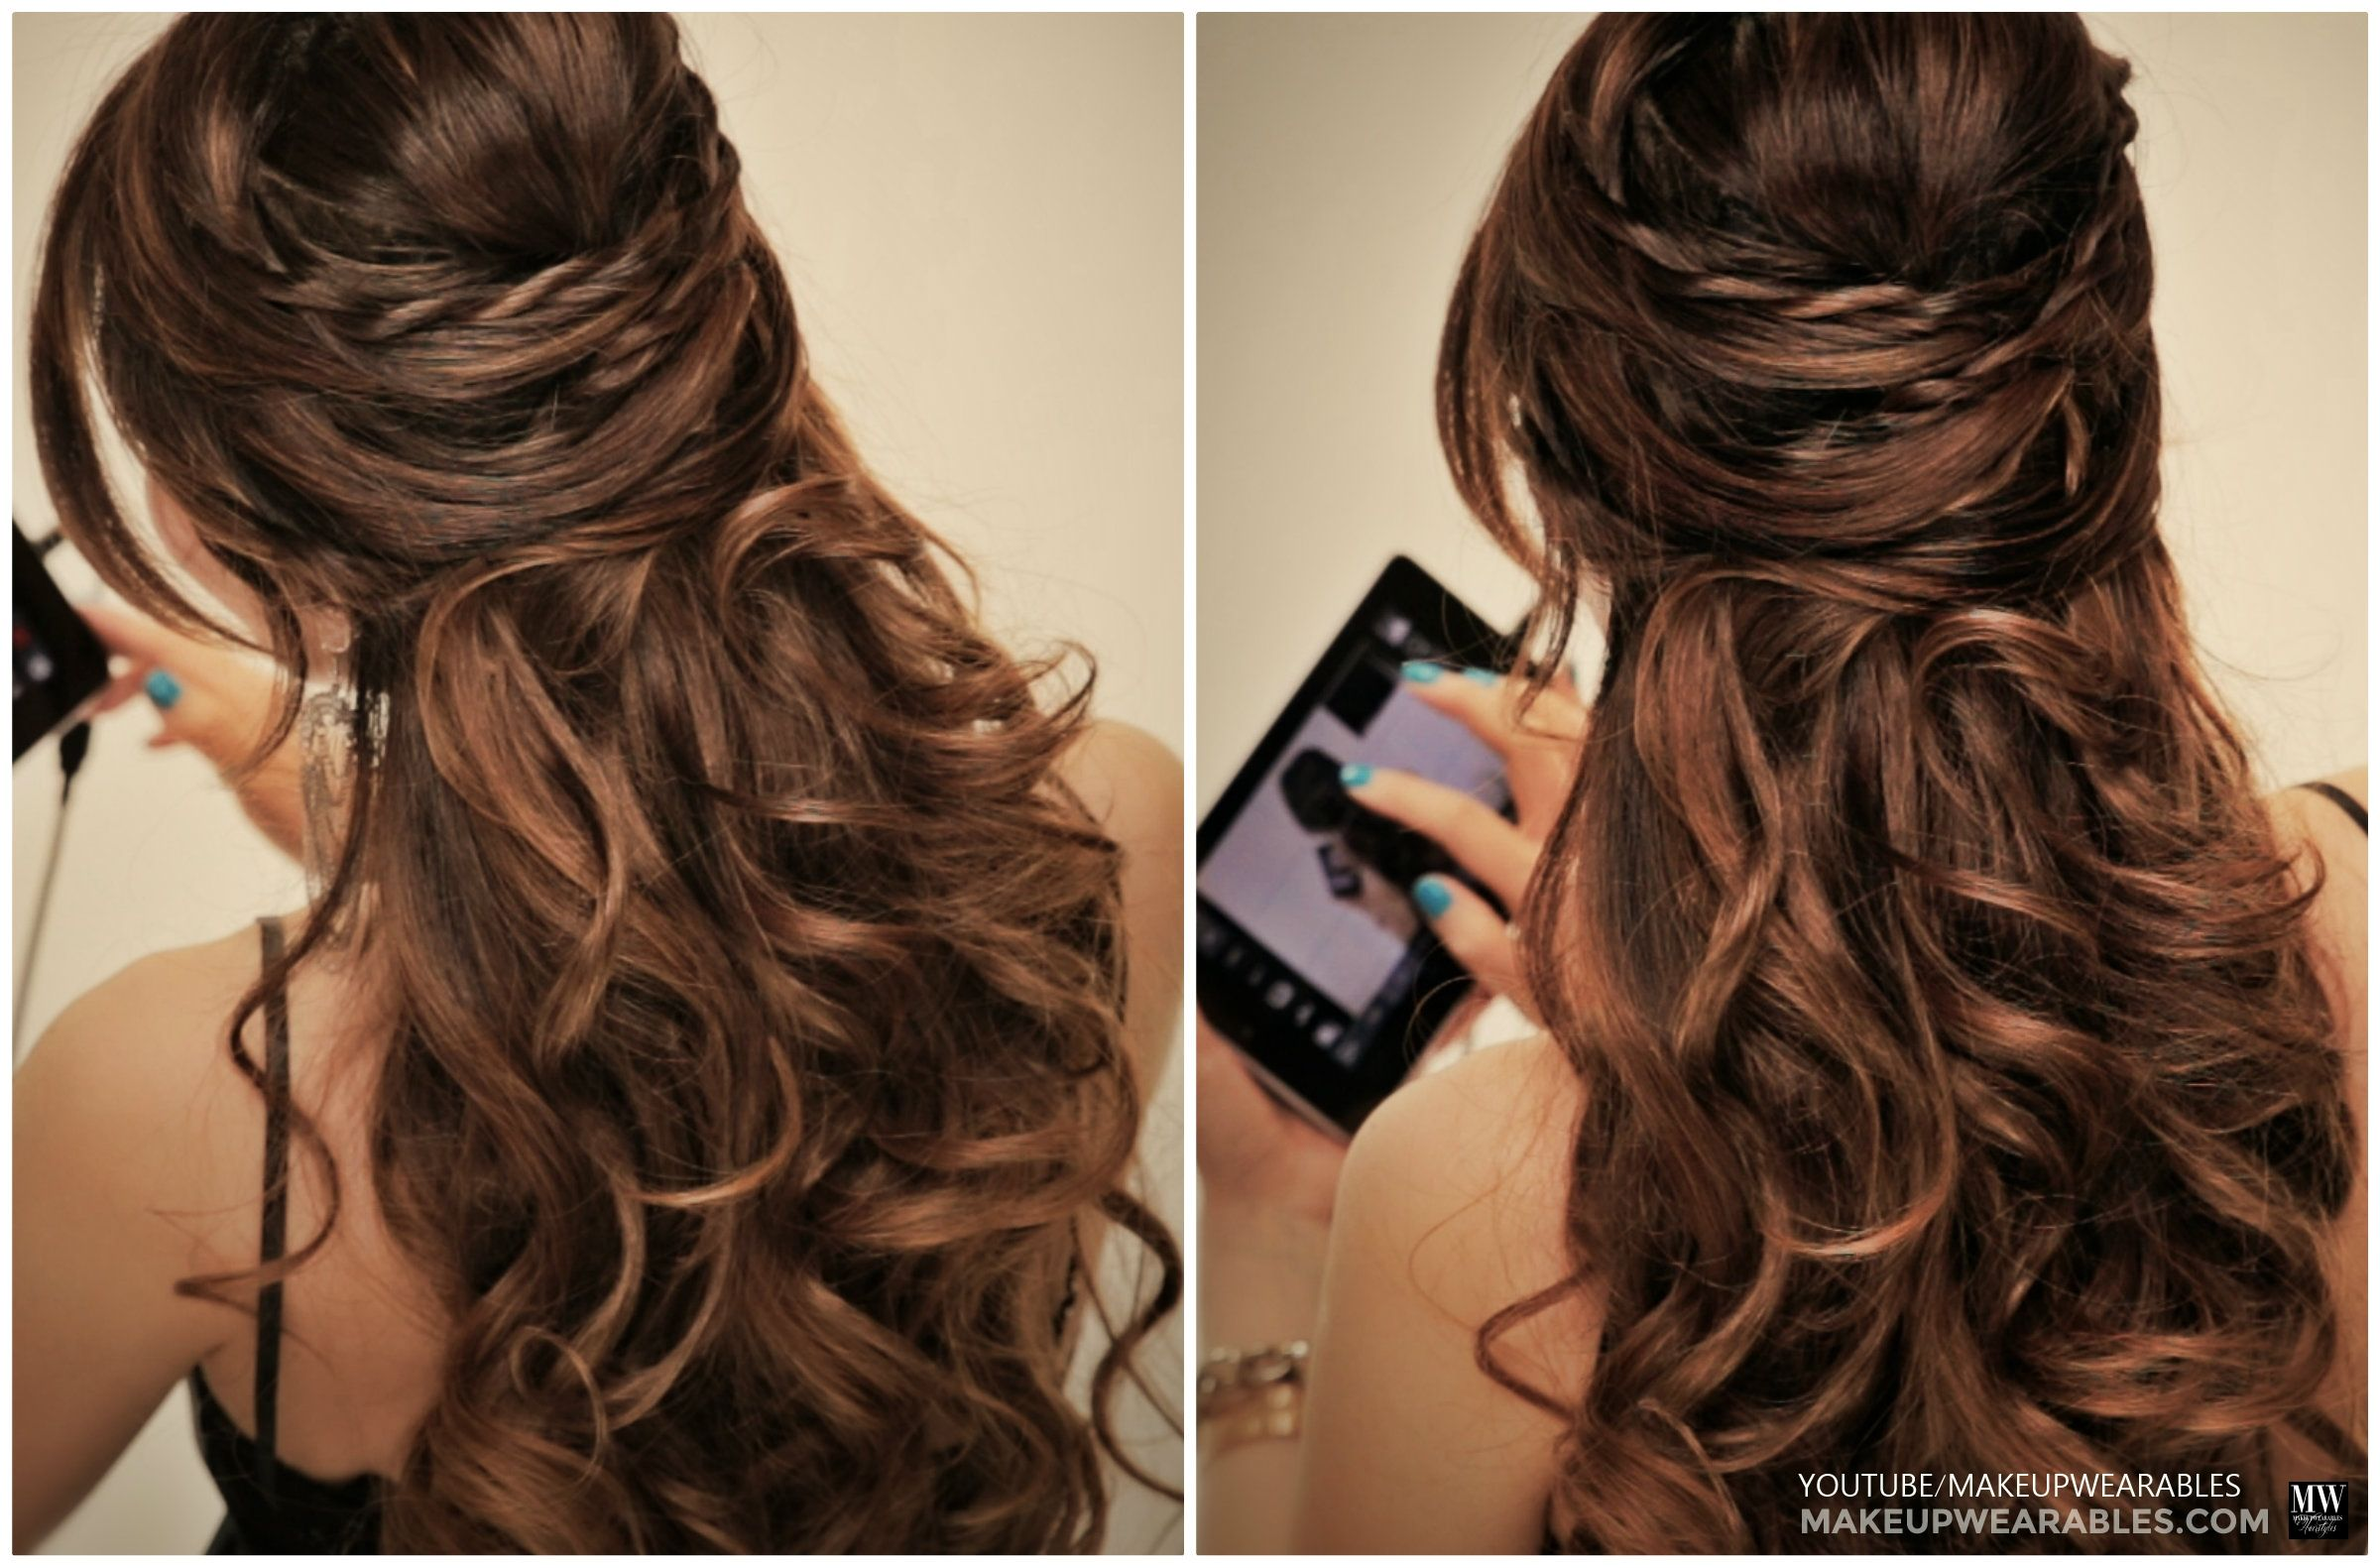 How To 5 Amazingly Cute Easy Hairstyles With A Simple Twist Easy Hairstyles Party Hairstyles For Long Hair Long Hair Styles